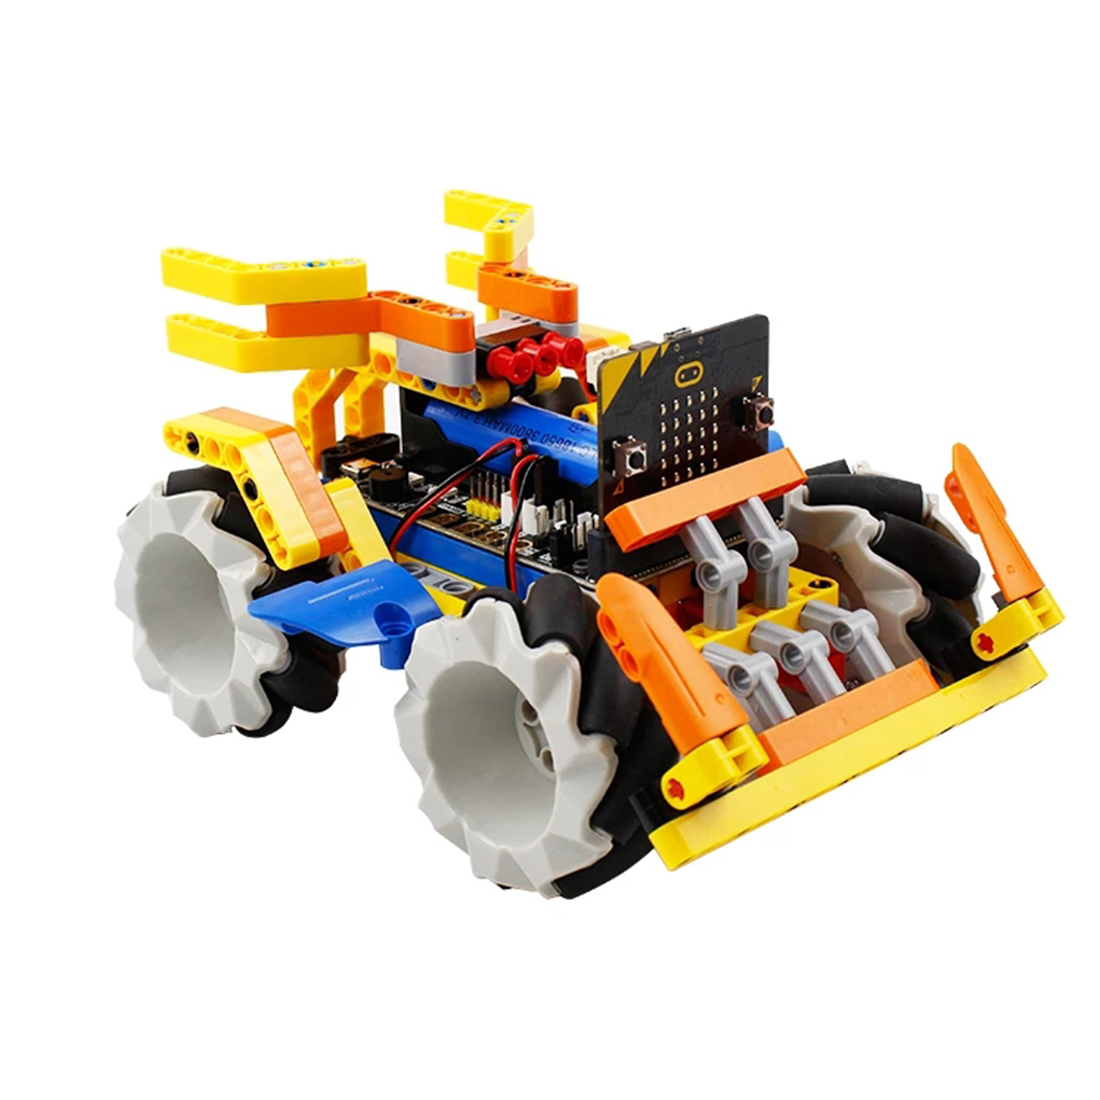 Programmable Intelligent Robot Building Block Kit Mecanum Wheel Robot Car For Micro: Bit Gift (Without/With Micro:bit Board)